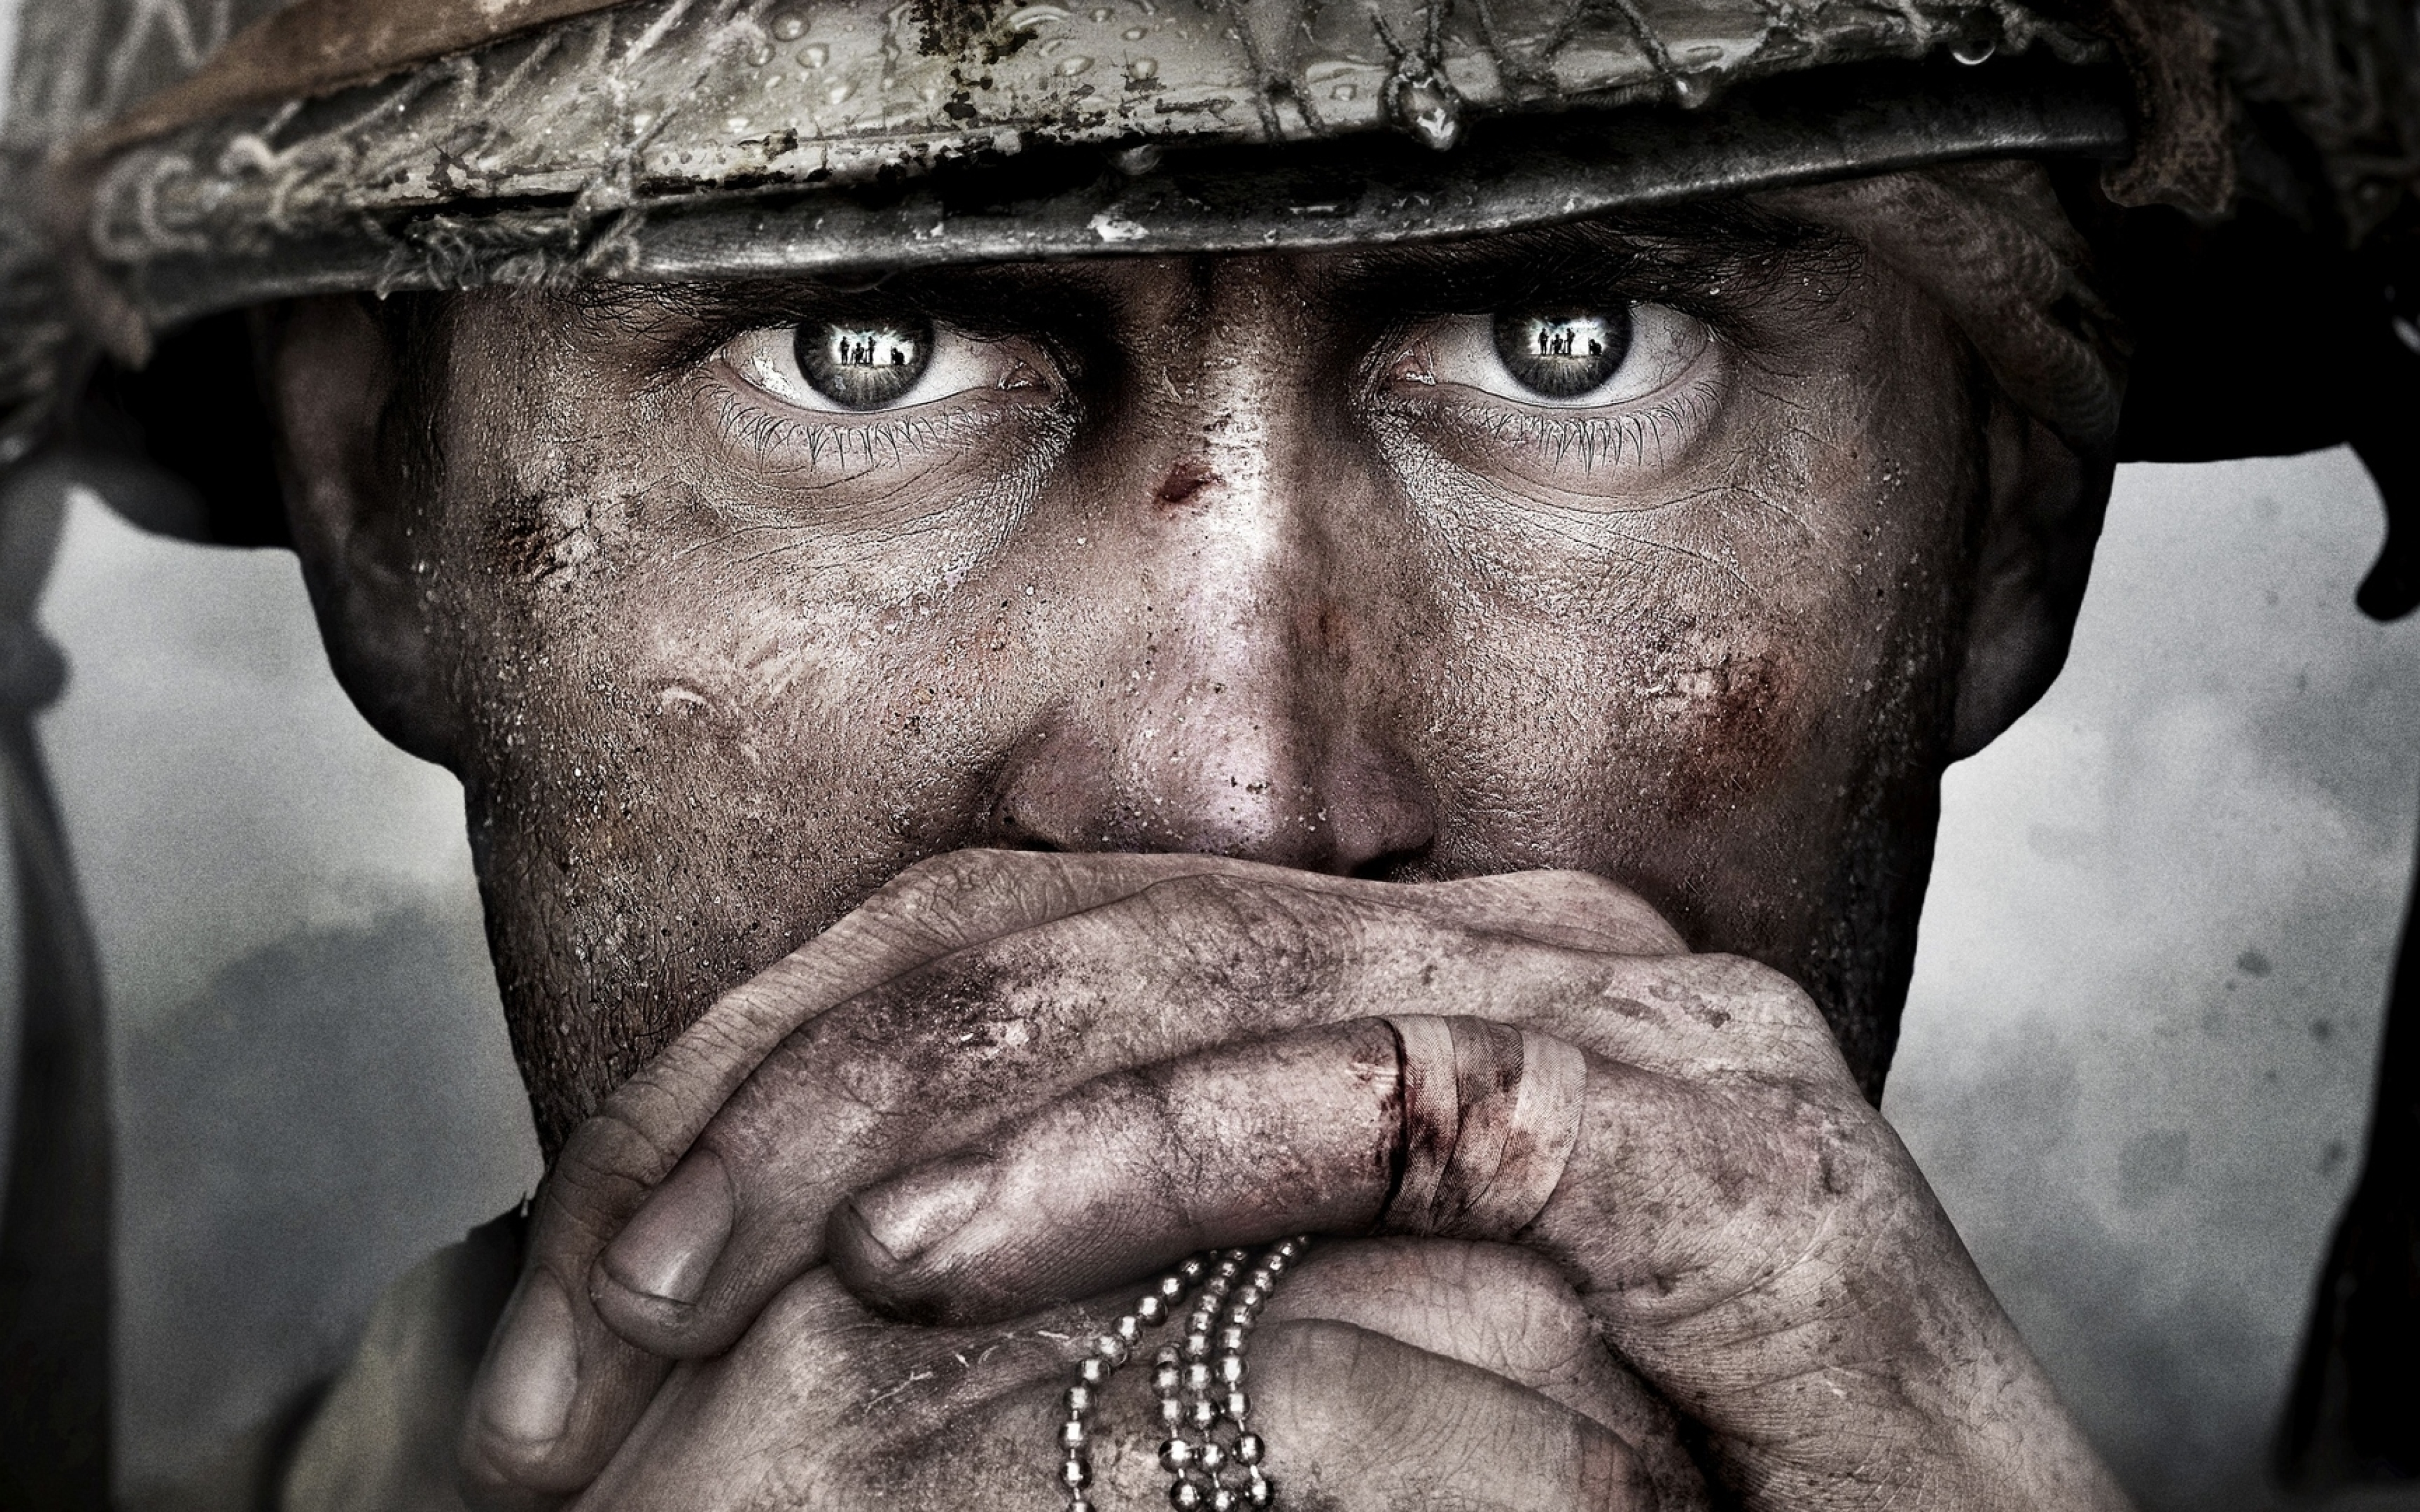 Call Of Duty Wwii Wallpaper: Call Of Duty Wwii, Full HD Wallpaper